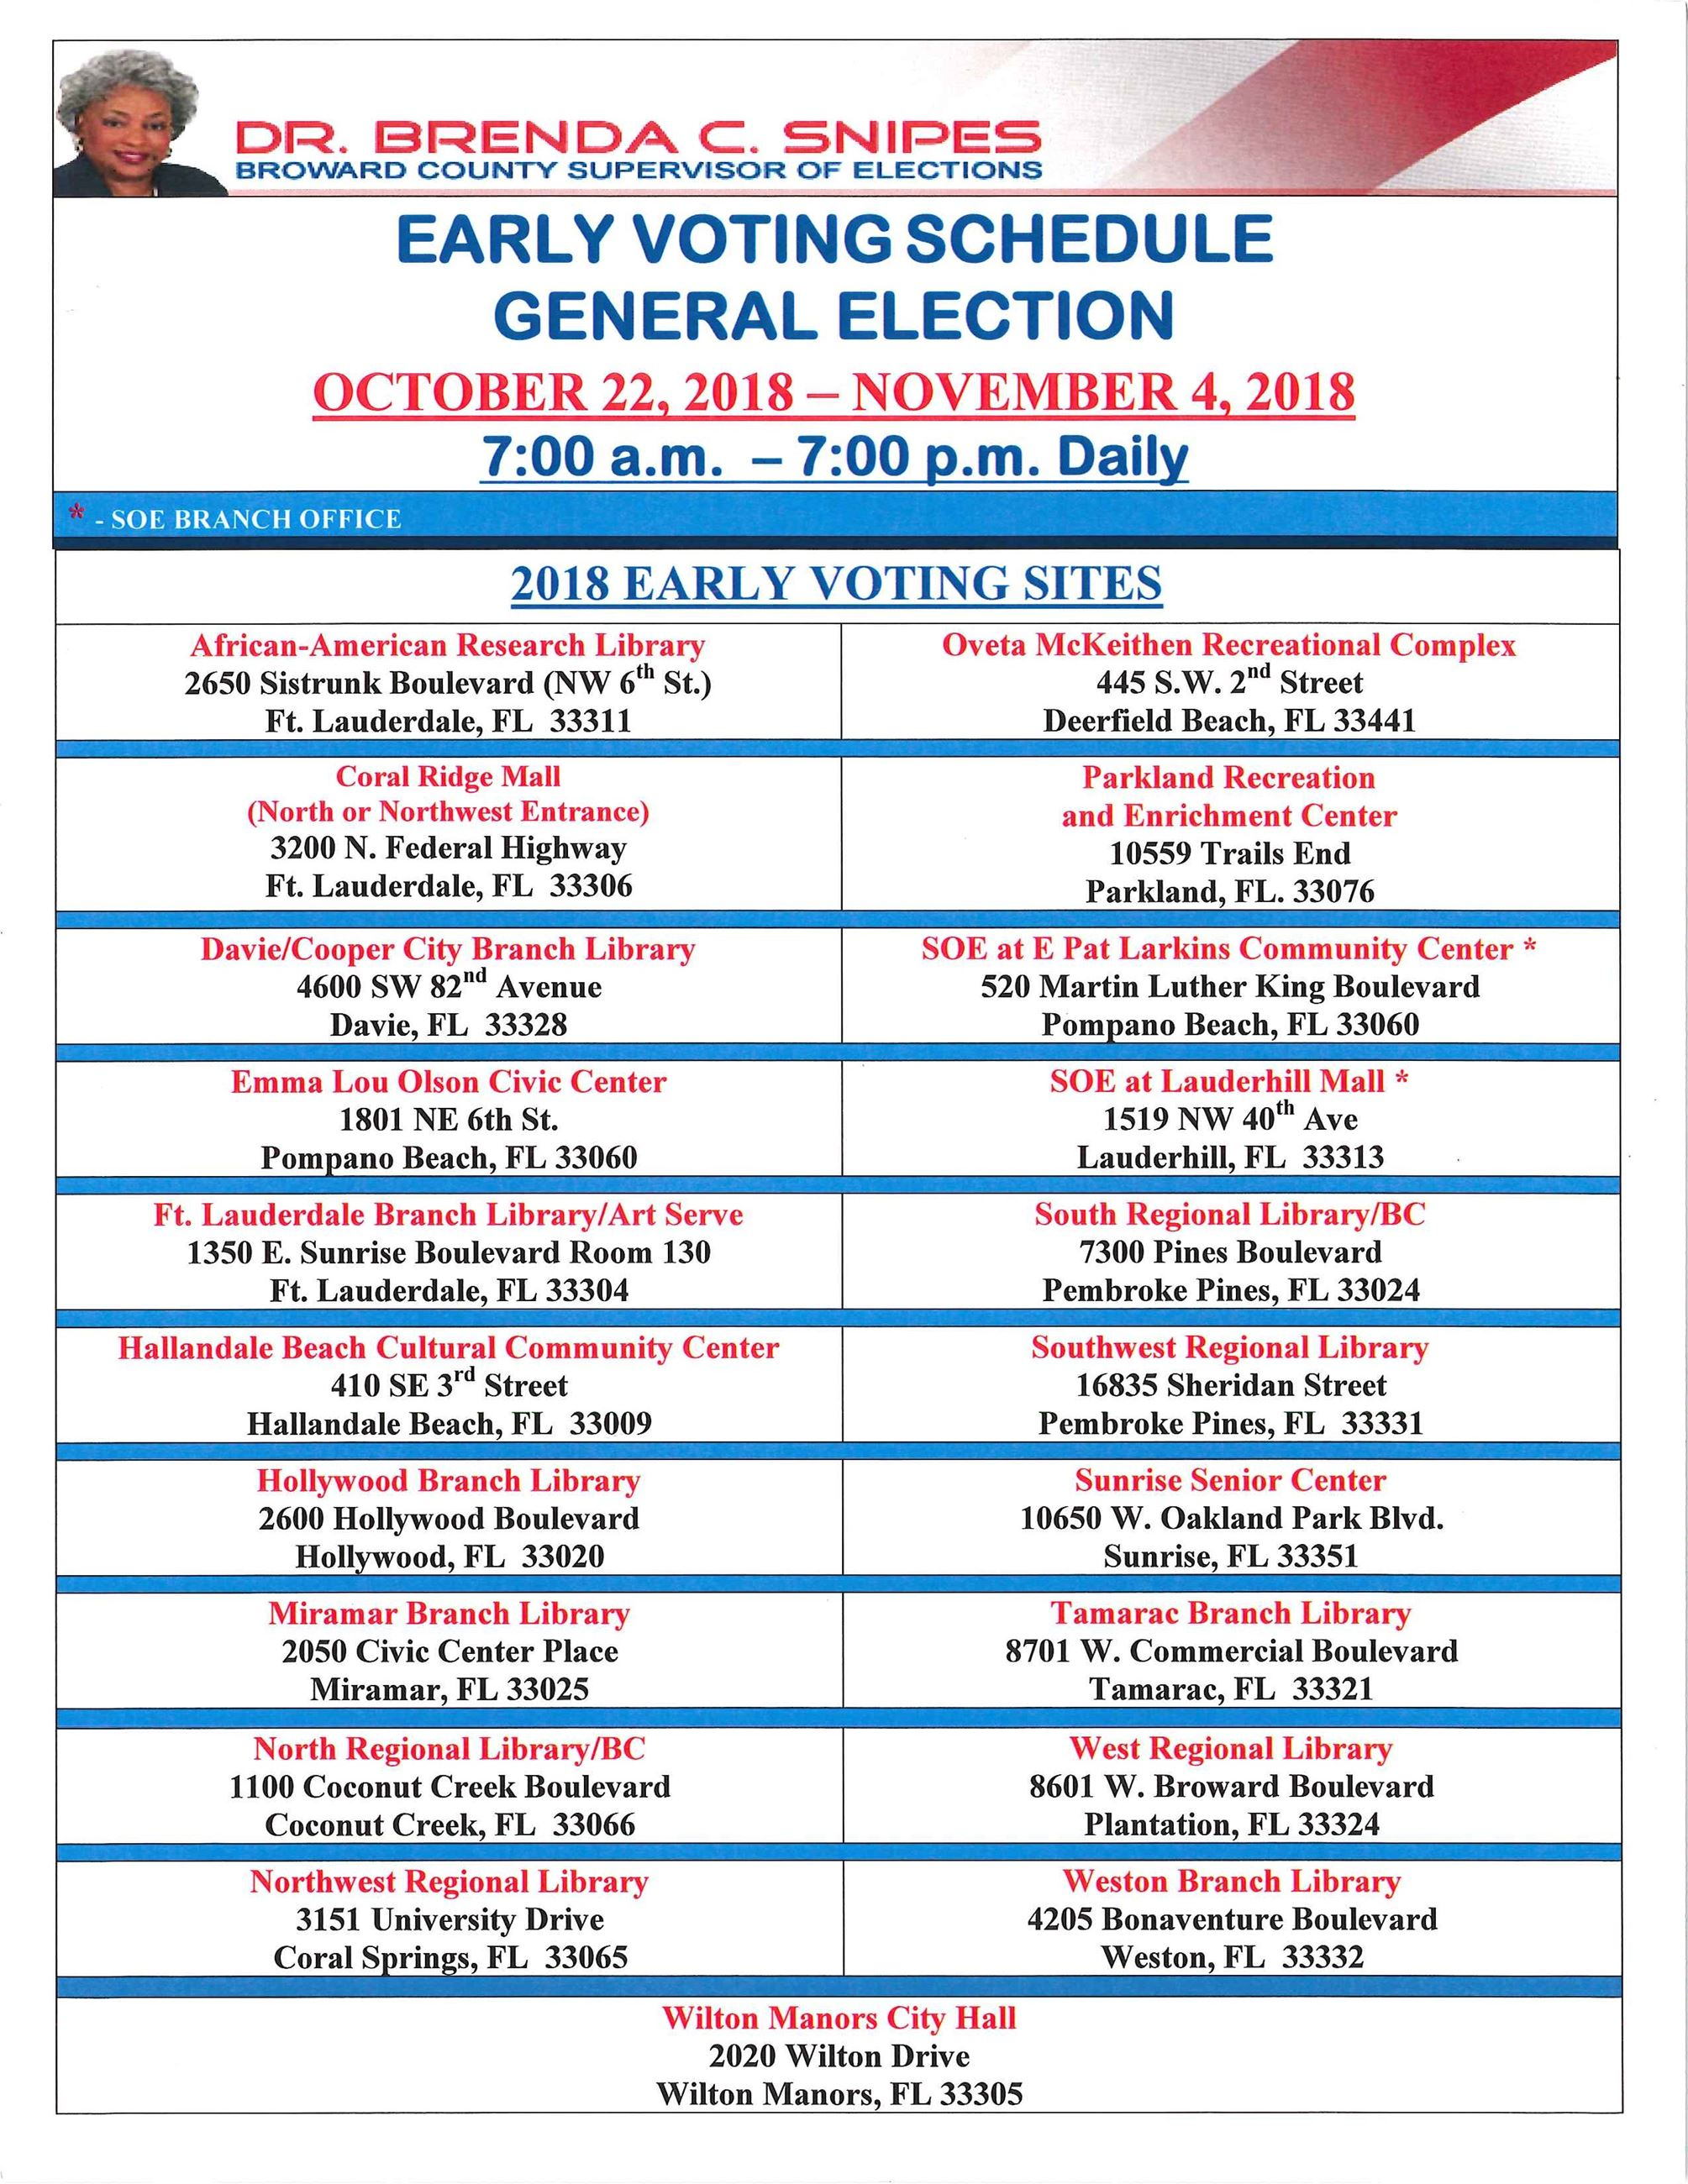 Early Voting Schedule - General Election 11-6-18